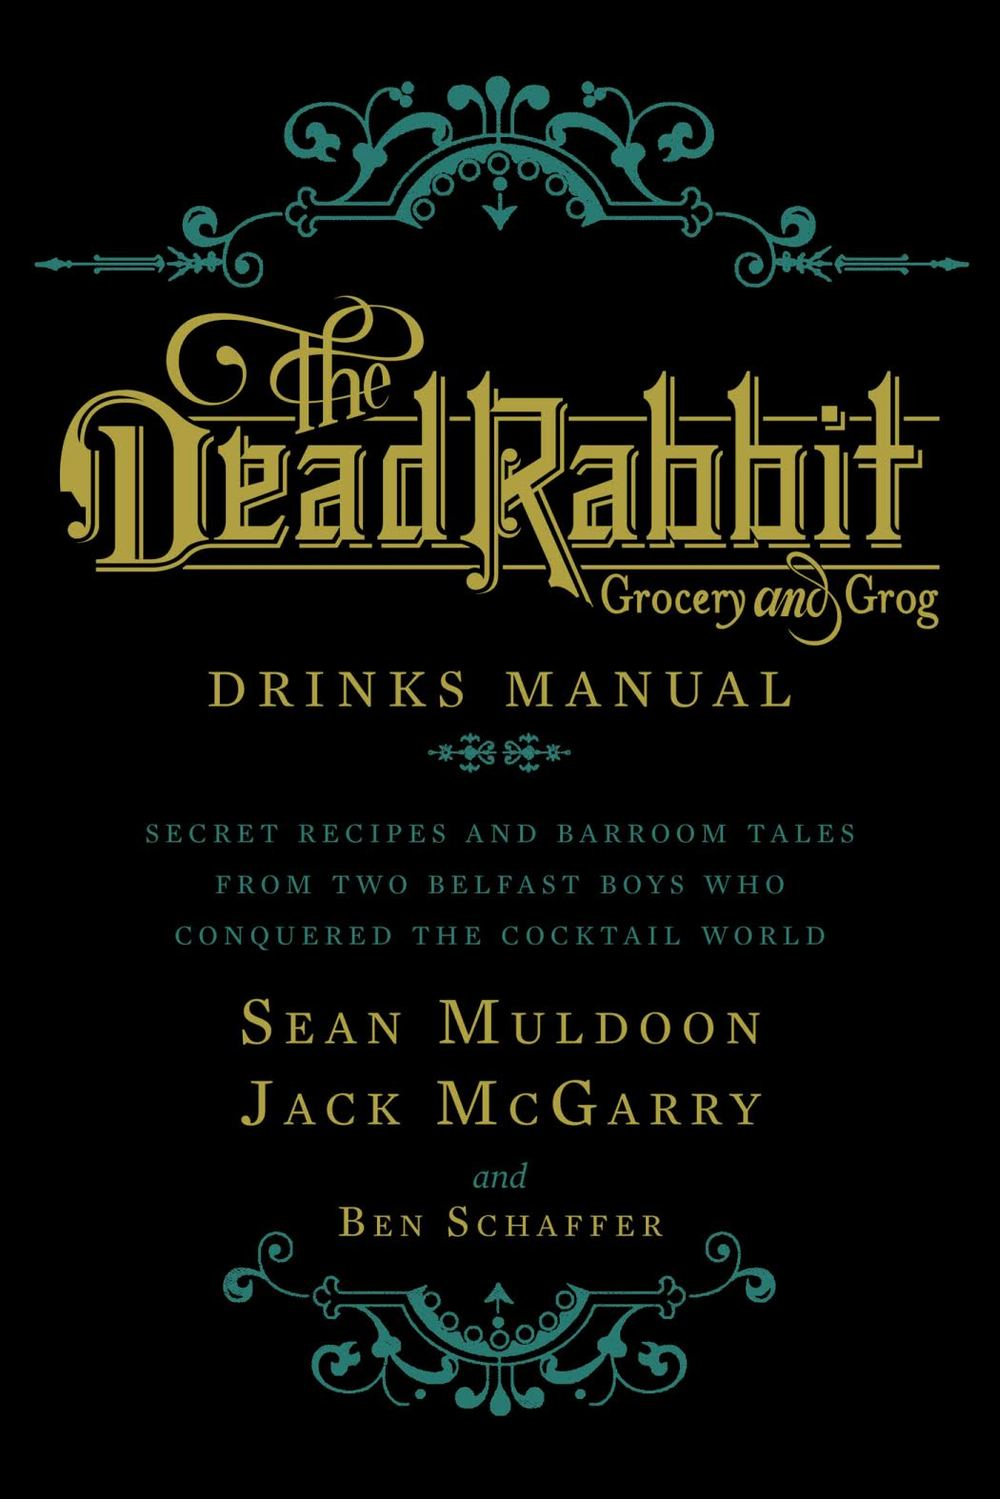 Sean Muldoon, Jack McGarry & Ben Schaffer <br>Houghton Mifflin Harcourt